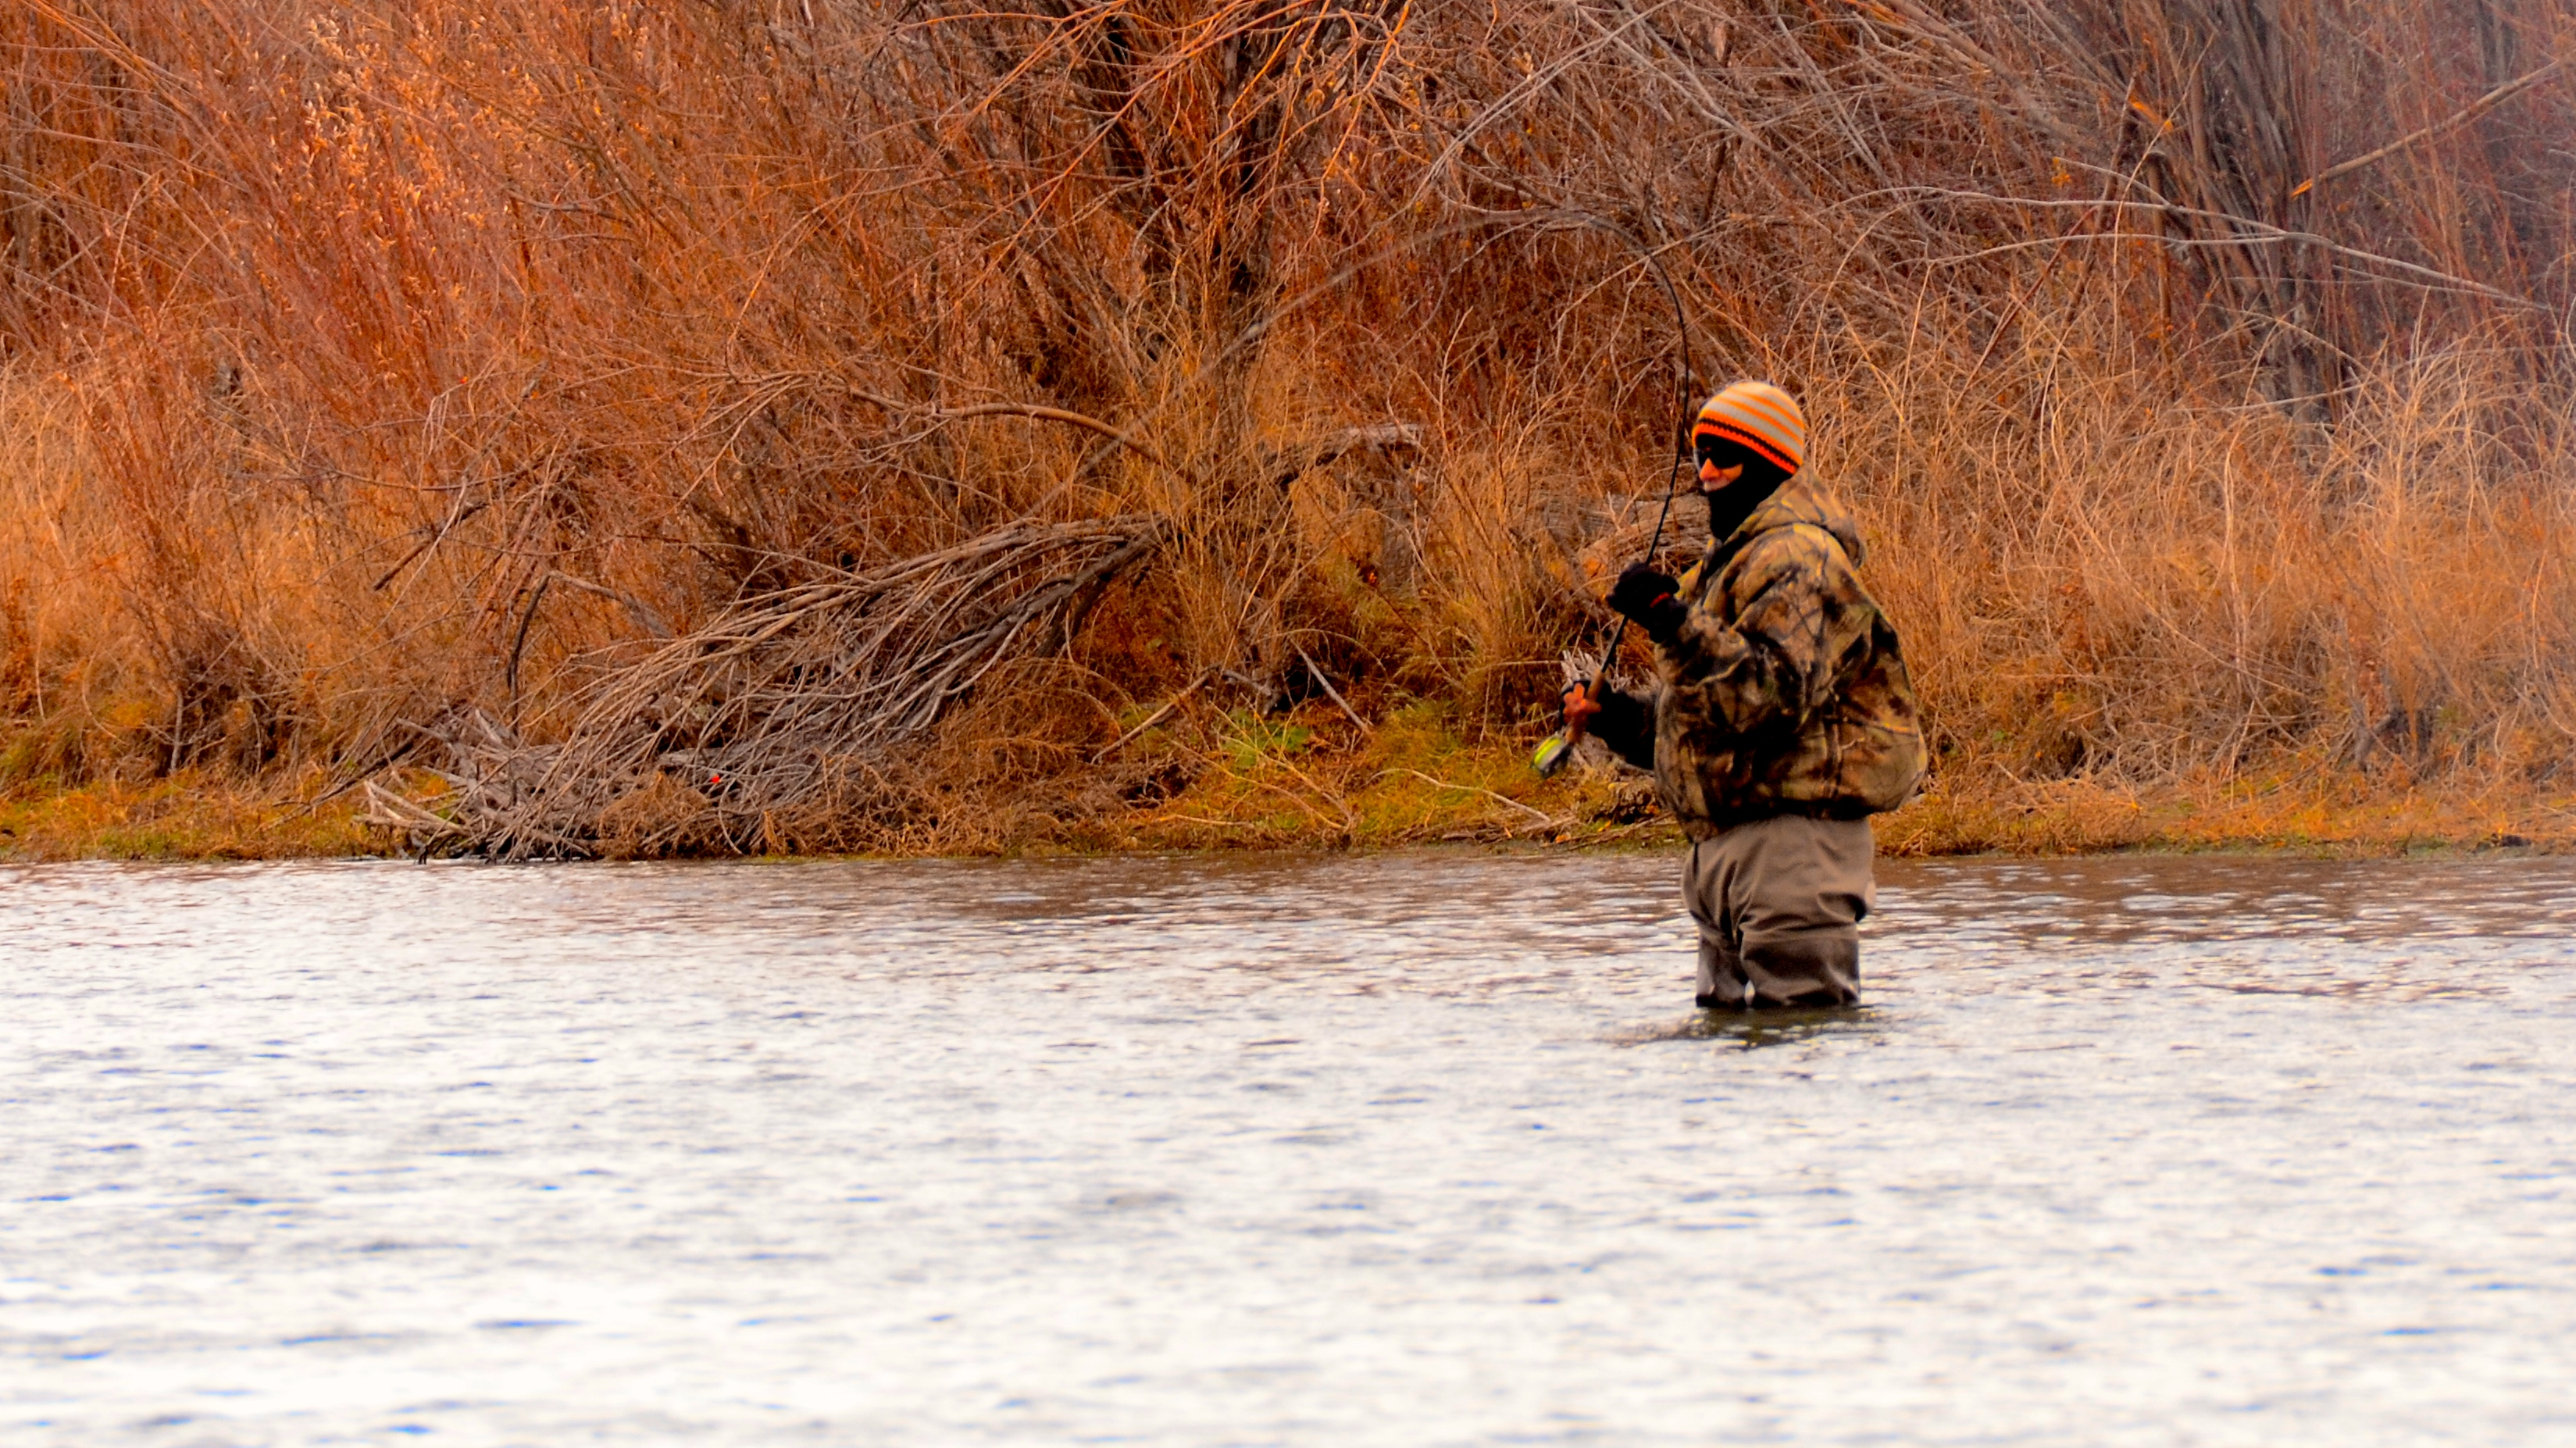 Missouri River Montana Fishing Report 11.29.14